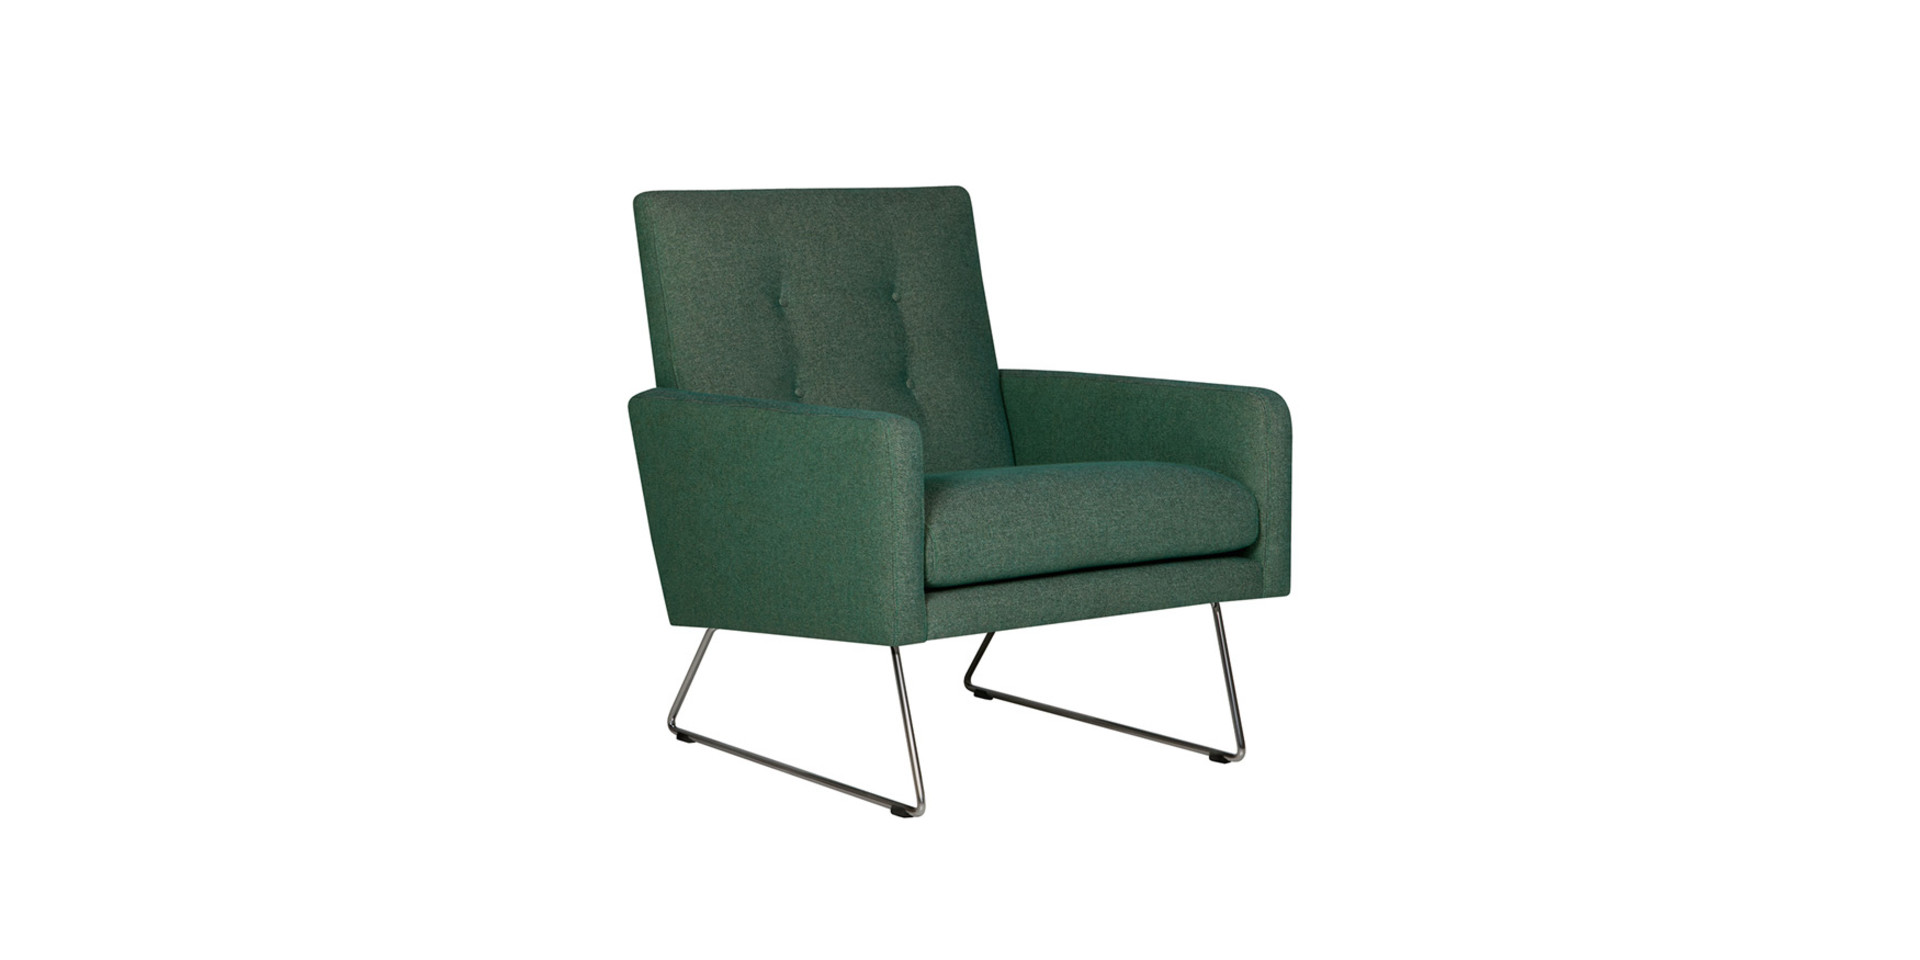 sits-max-fauteuil-dover7_green_2